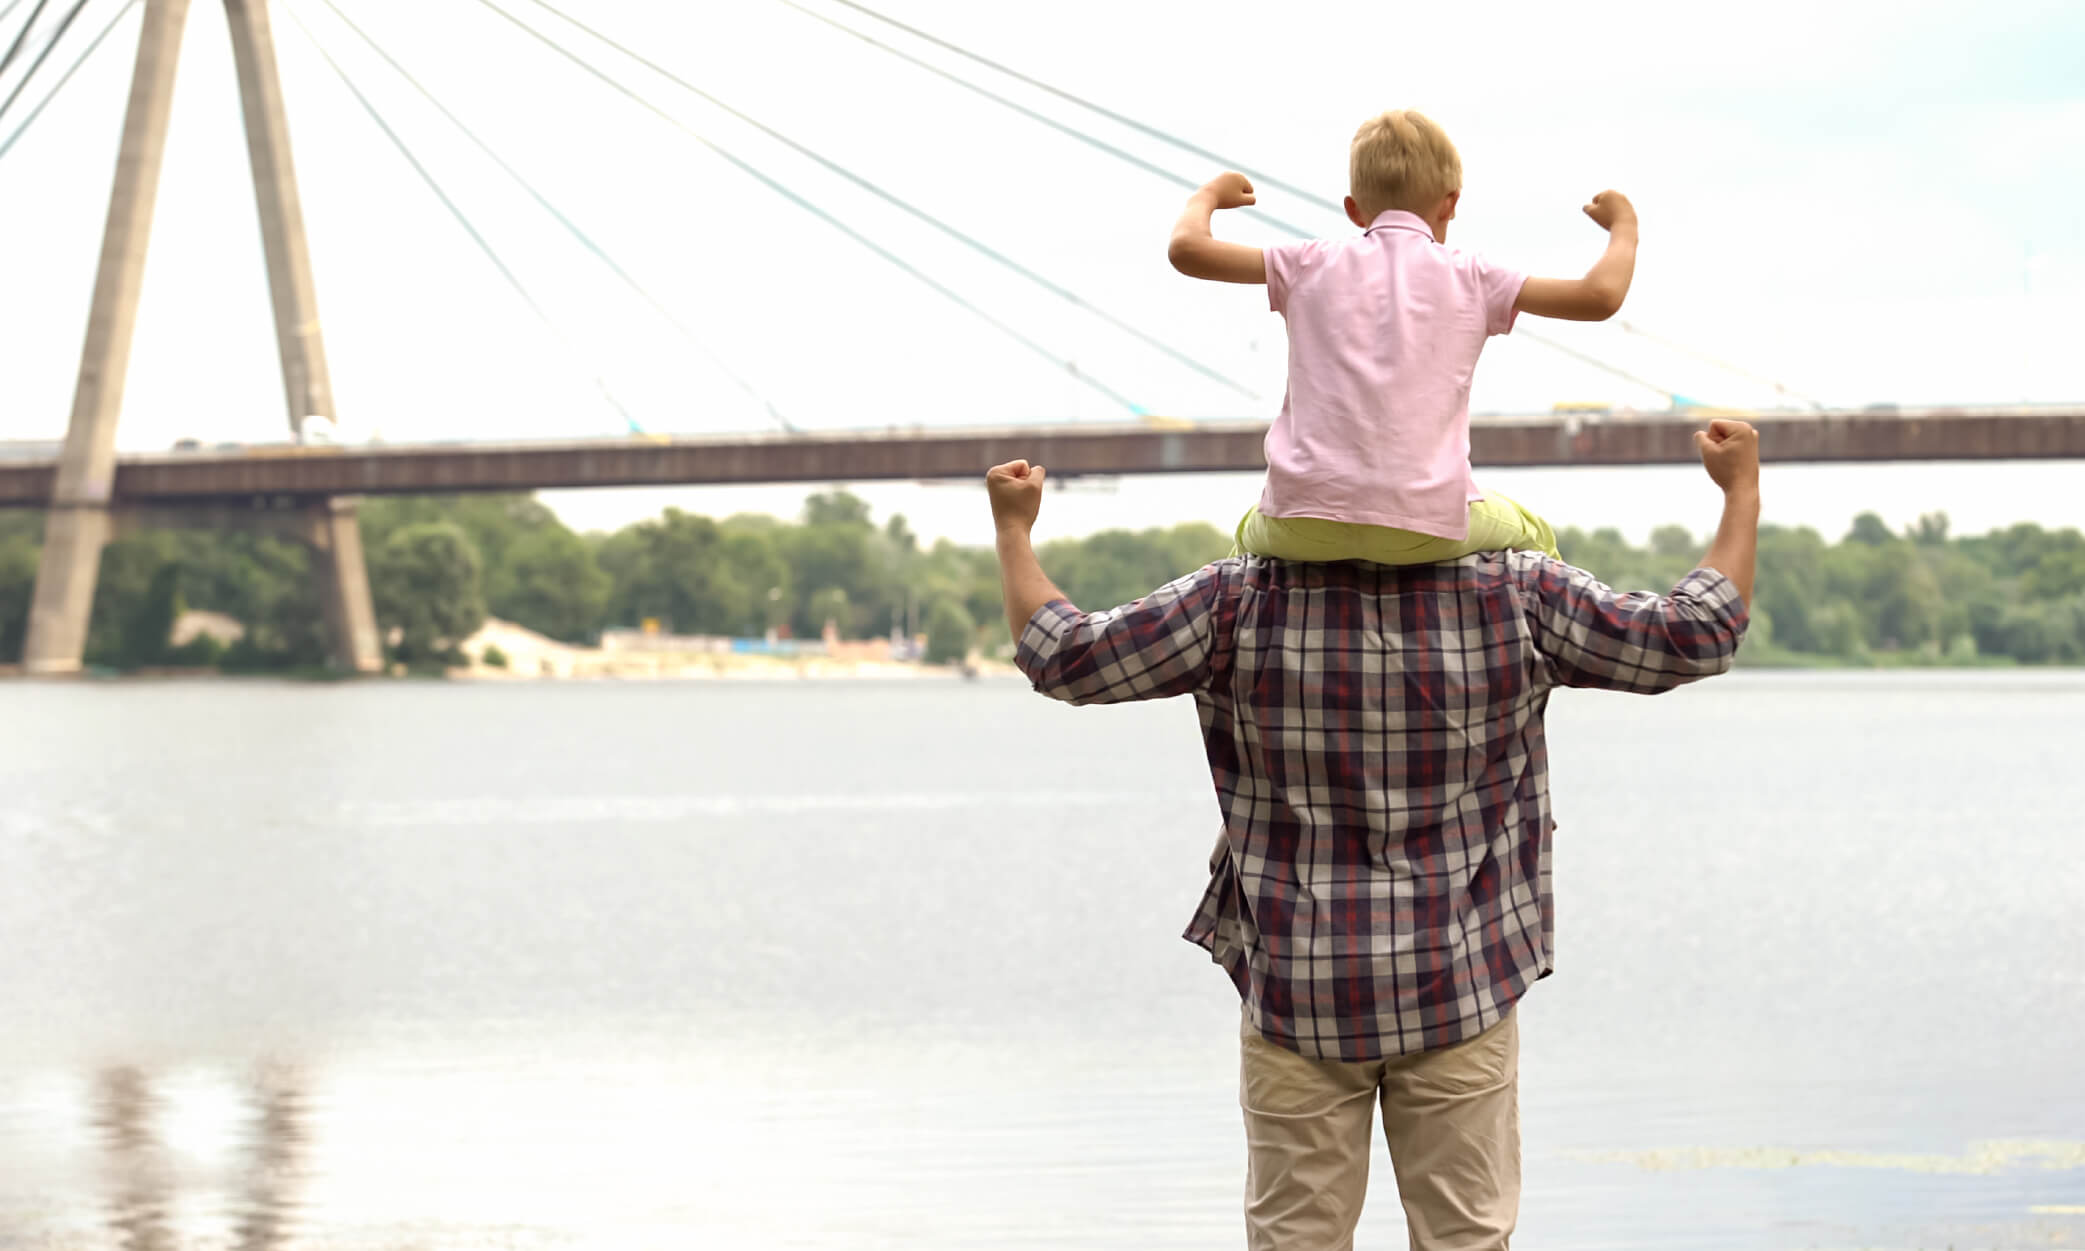 Dad and son in front of bridge showing muscles